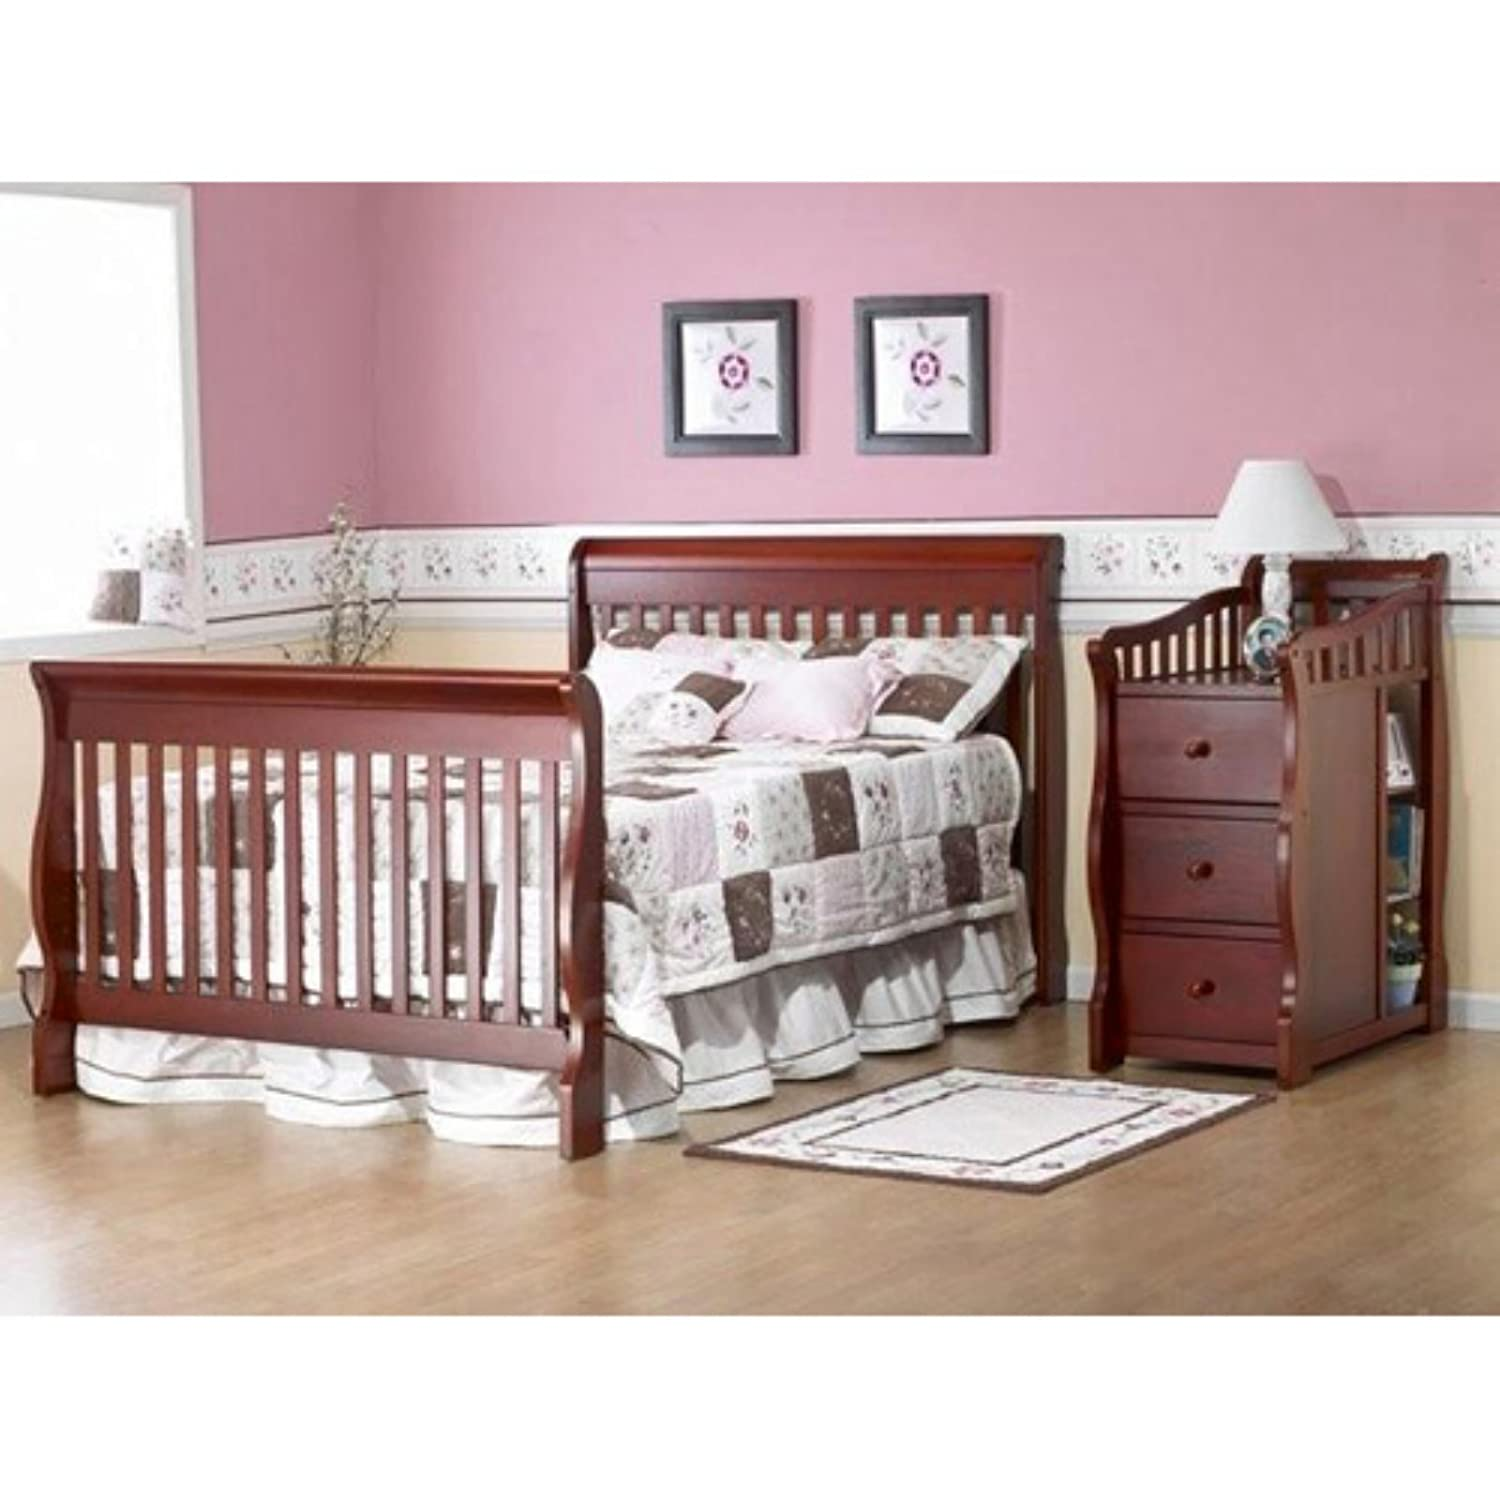 amazon and me size combo sets on full table changer com dp furniture dream crib baby in changing nursery